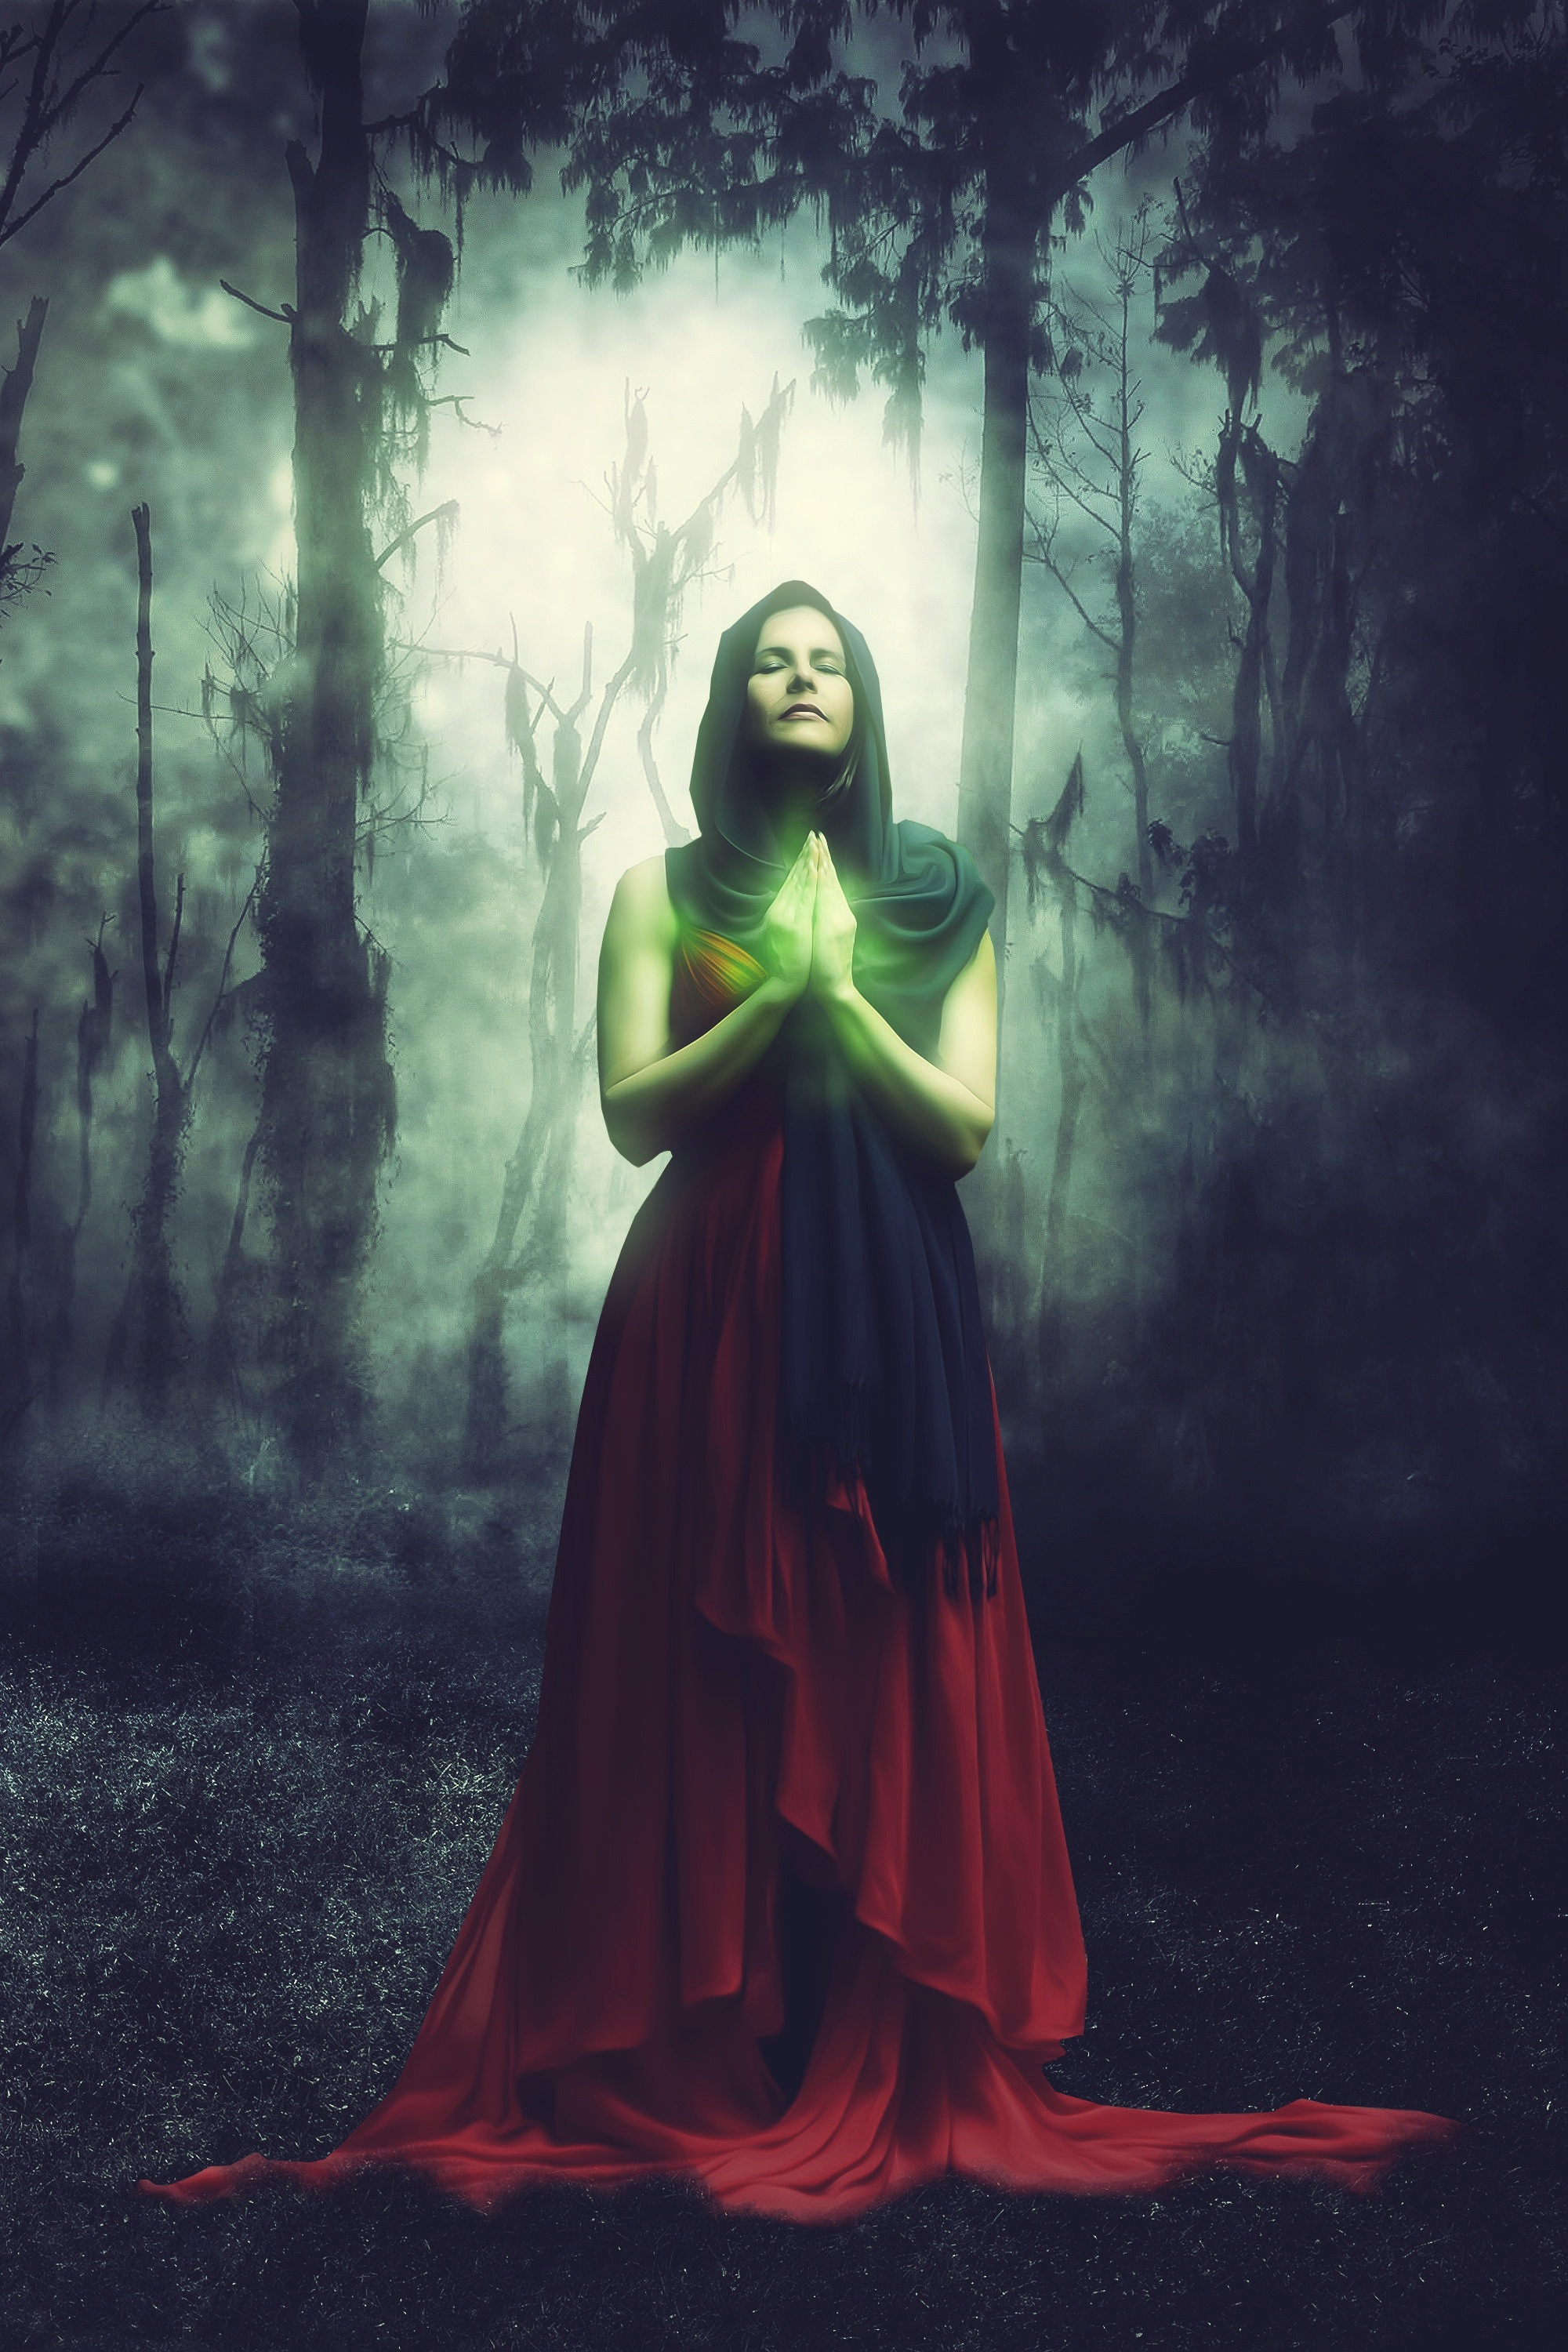 69382 download wallpaper Fantasy, Female, Woman, Magician, Magus, Magic, Forest, Surreal screensavers and pictures for free